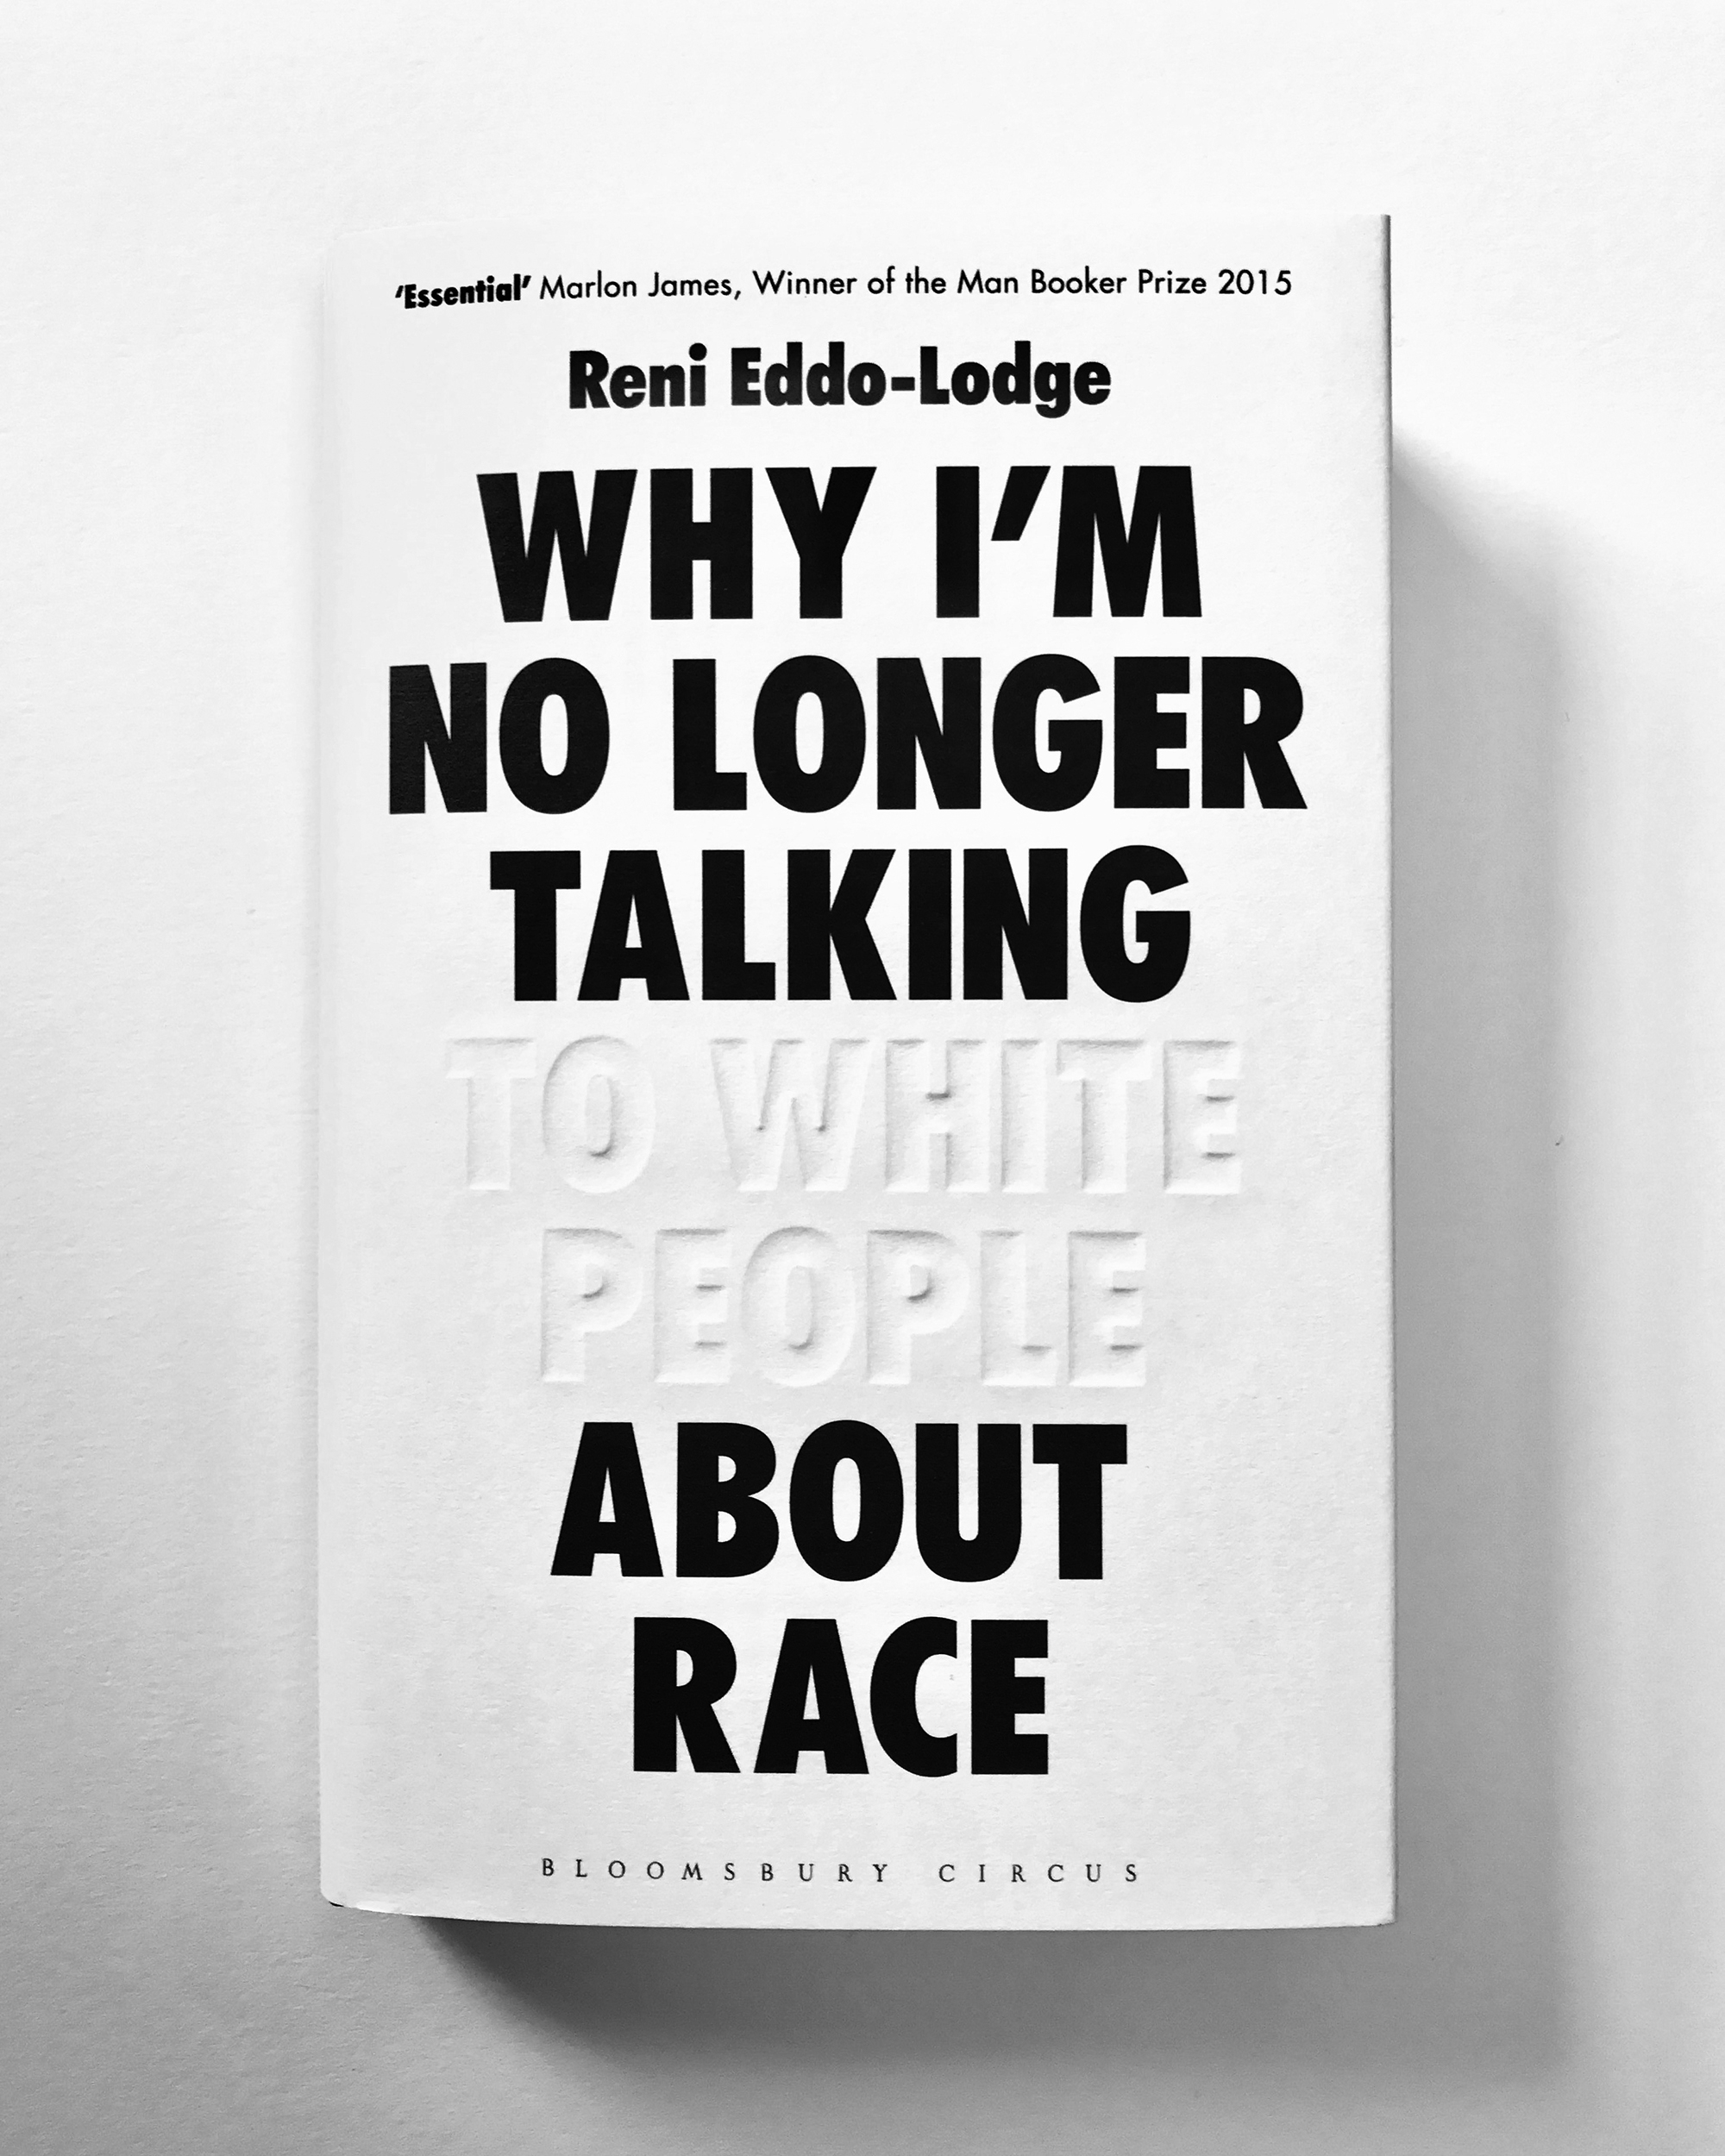 The black-and-white cover for Reni Enno-Lodge's book Why I'm No Longer Talking to White People About Race features blind debossed lettering